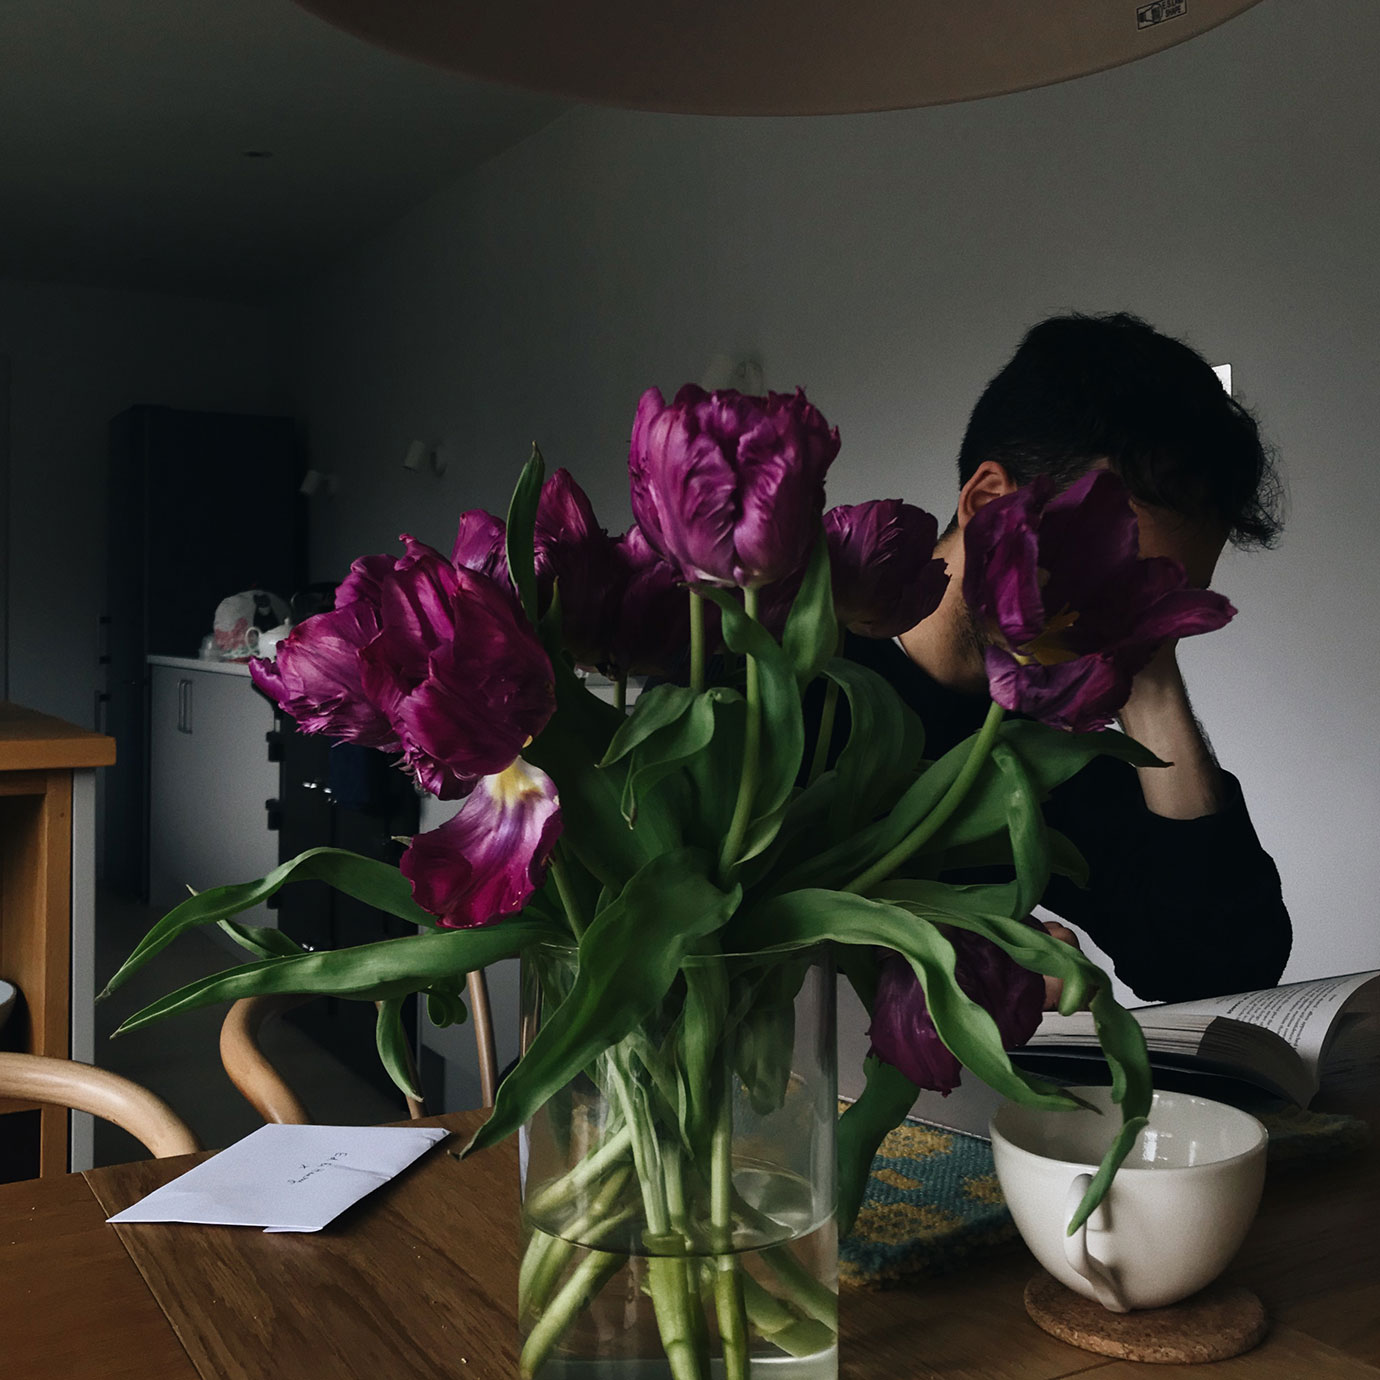 A vase of purple flowers with a person behind them.